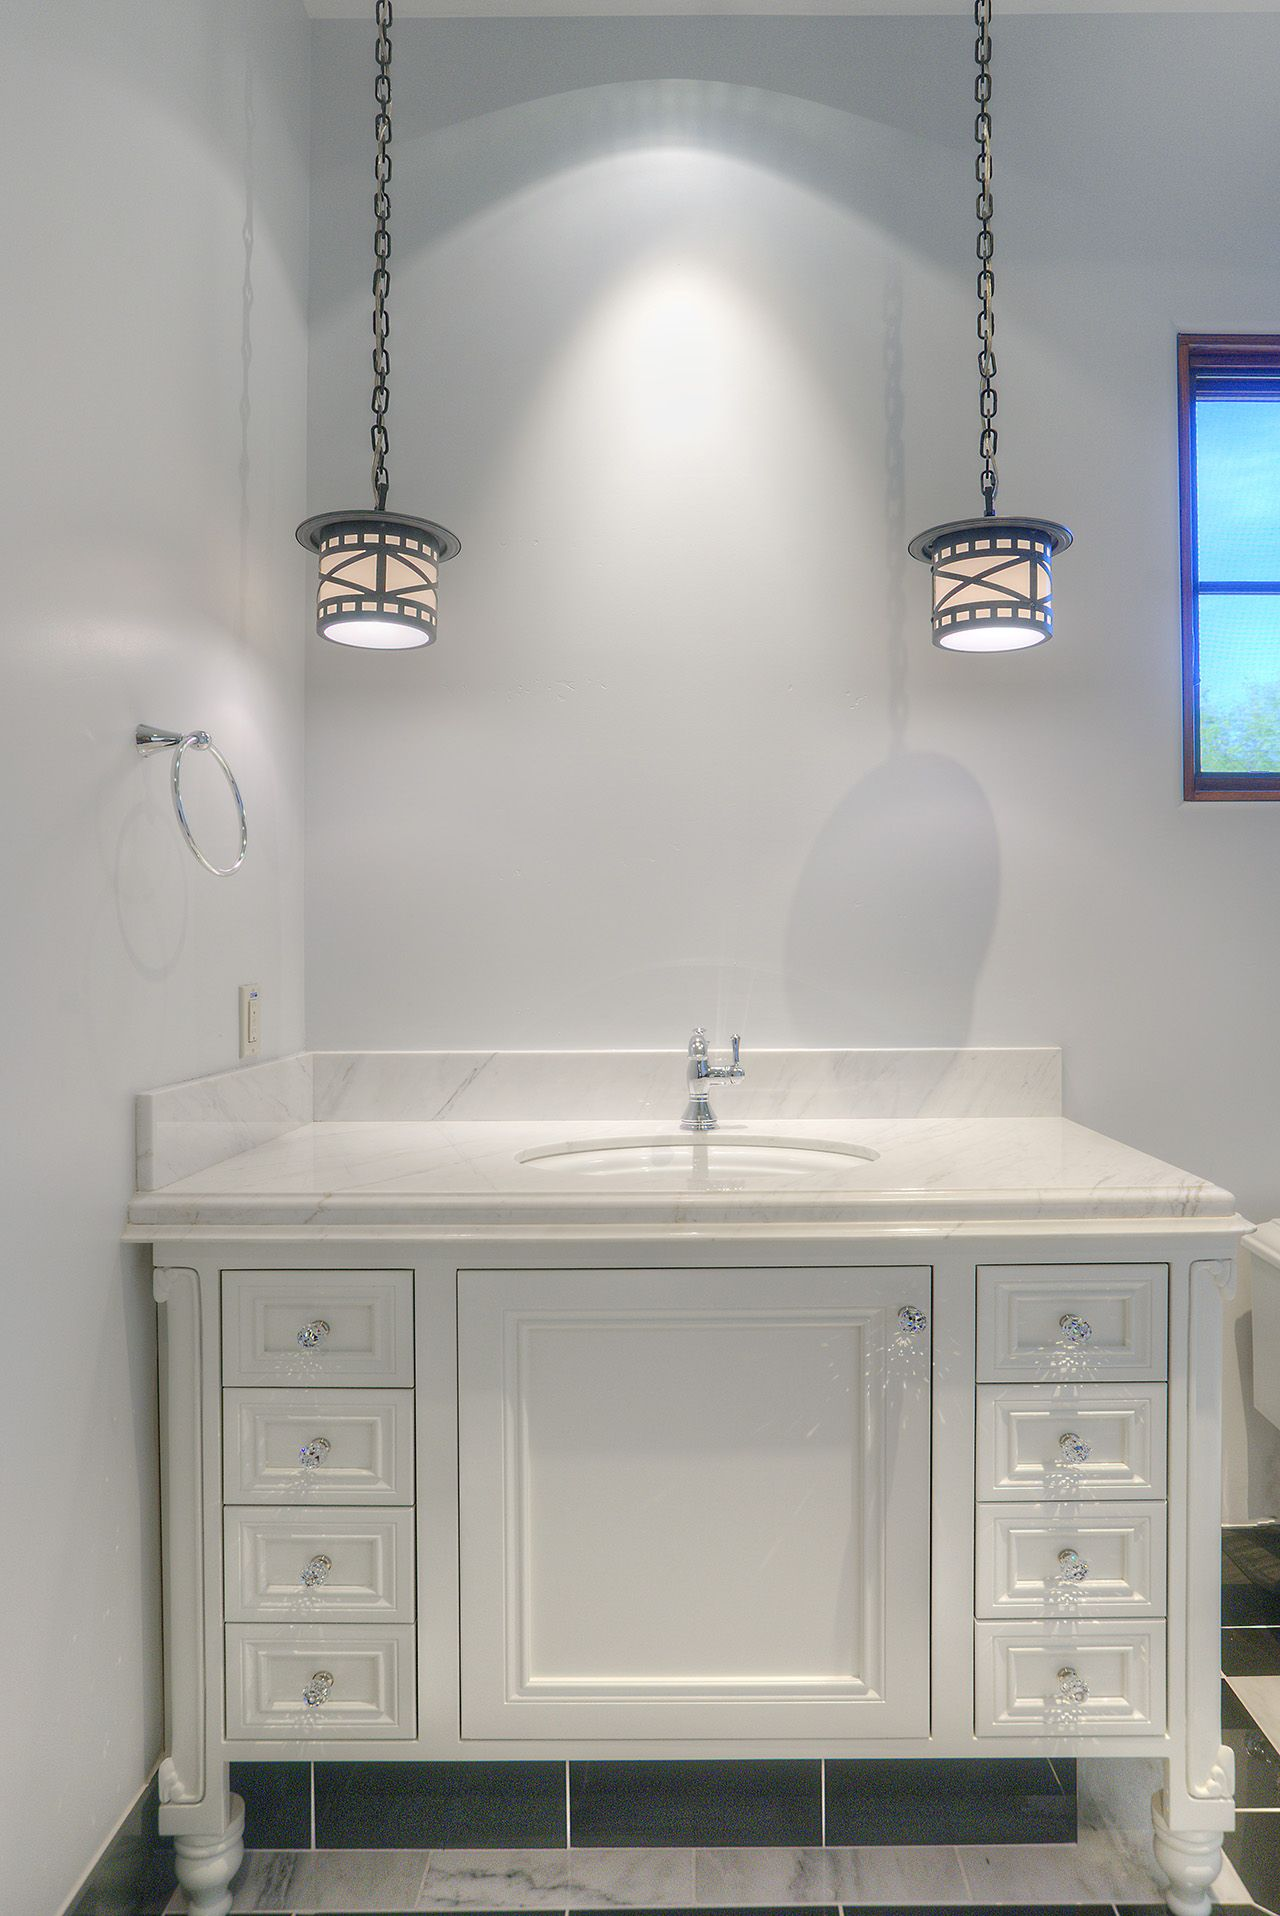 Luxury Bathroom With Black And White Decor. This Furniture Style